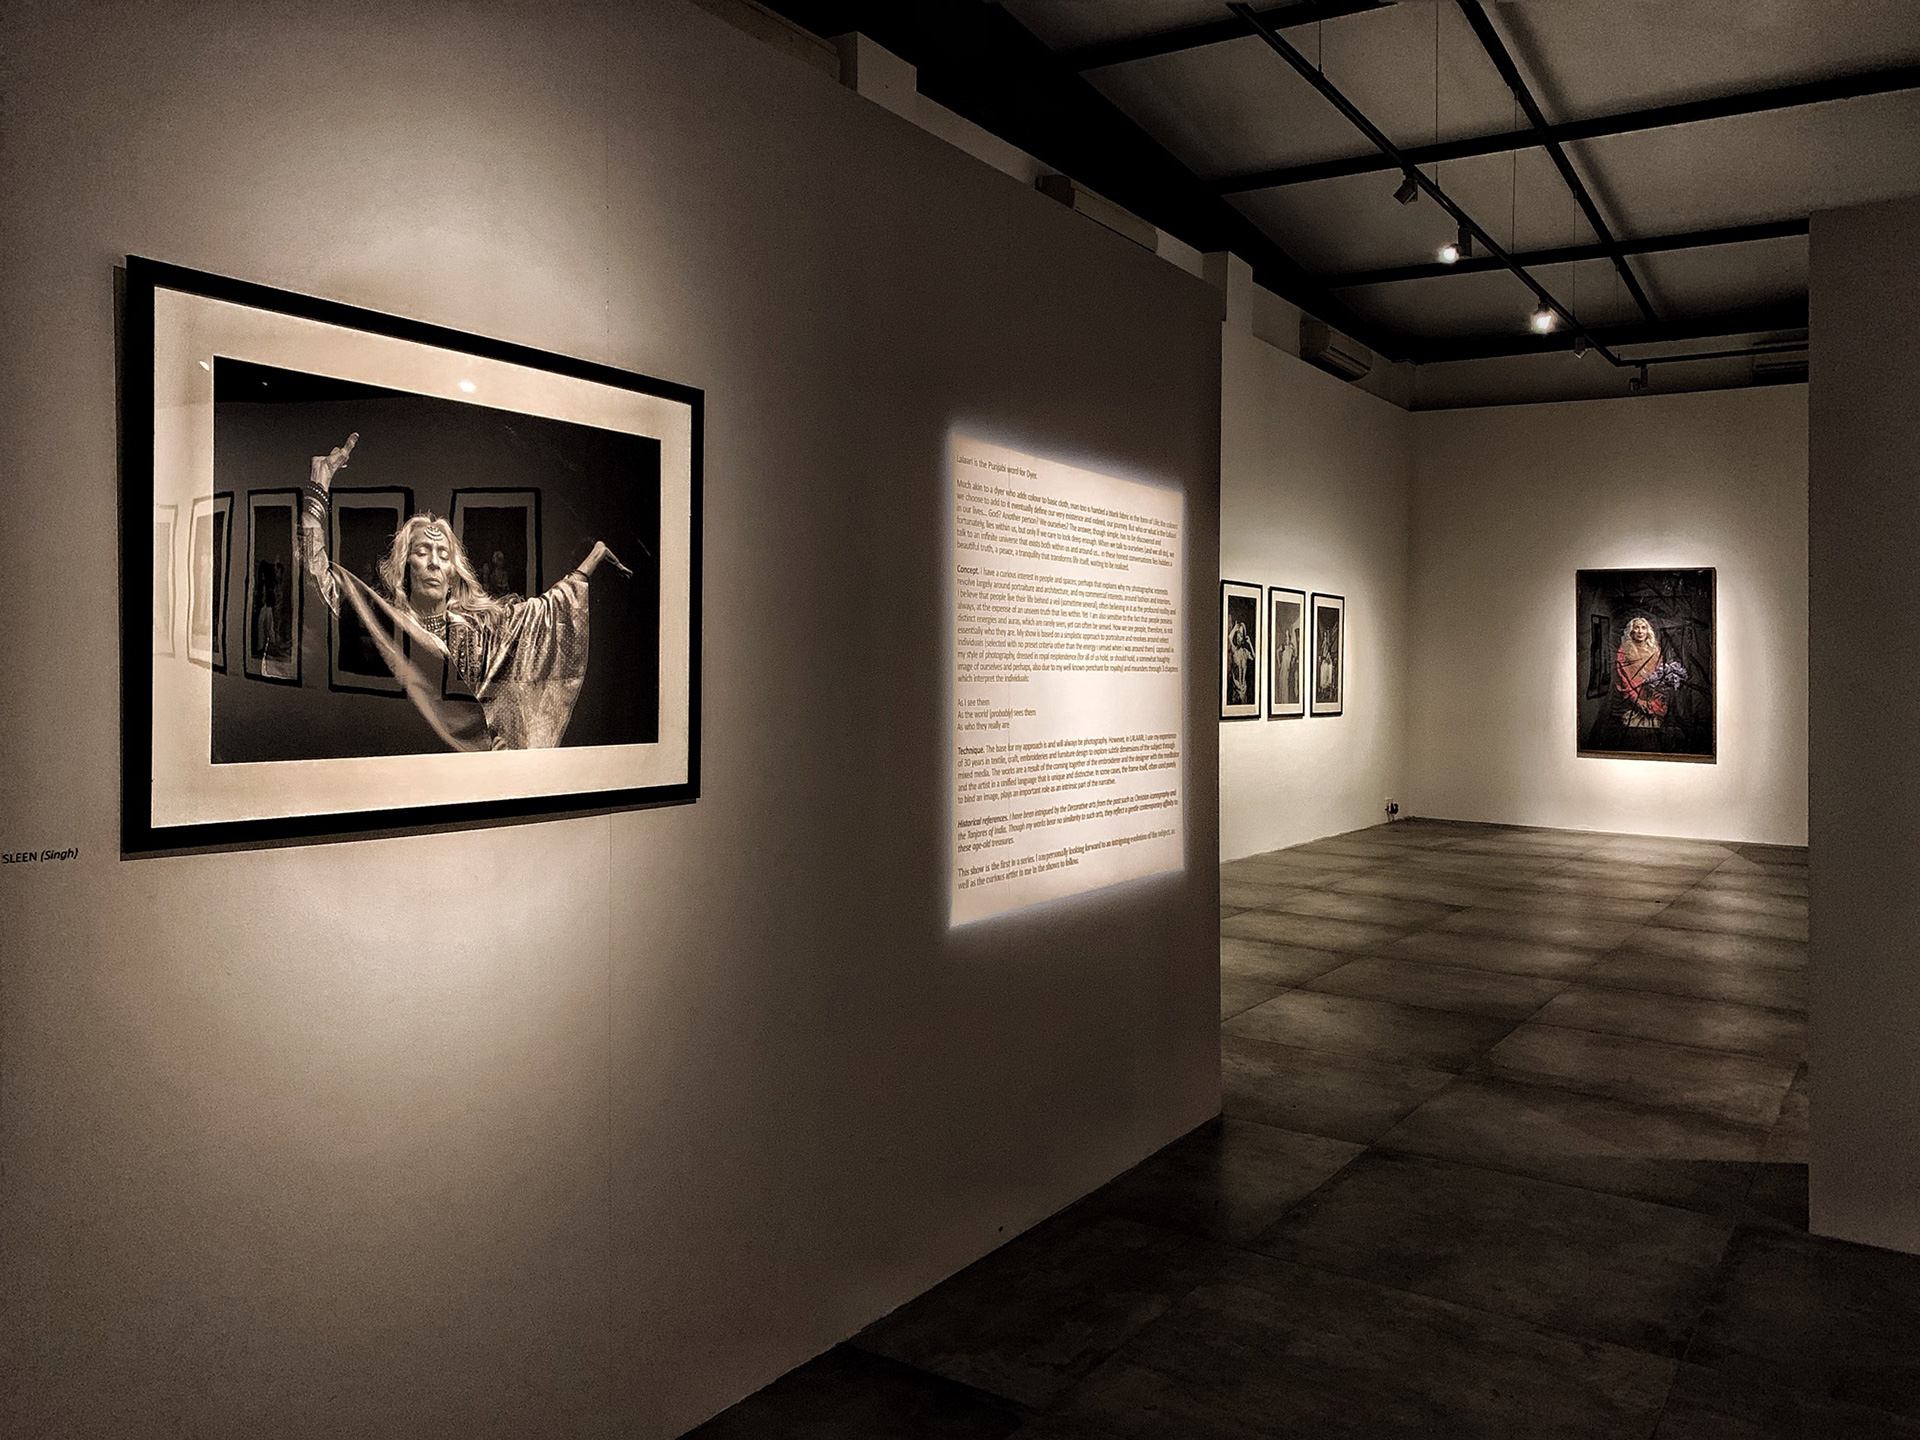 A glimpse from the exhibition Lalaari, which brought select photographs by JJ Valaya | JJ Valaya and Raghu Rai at STIR Gallery | Lalaari | STIRworld